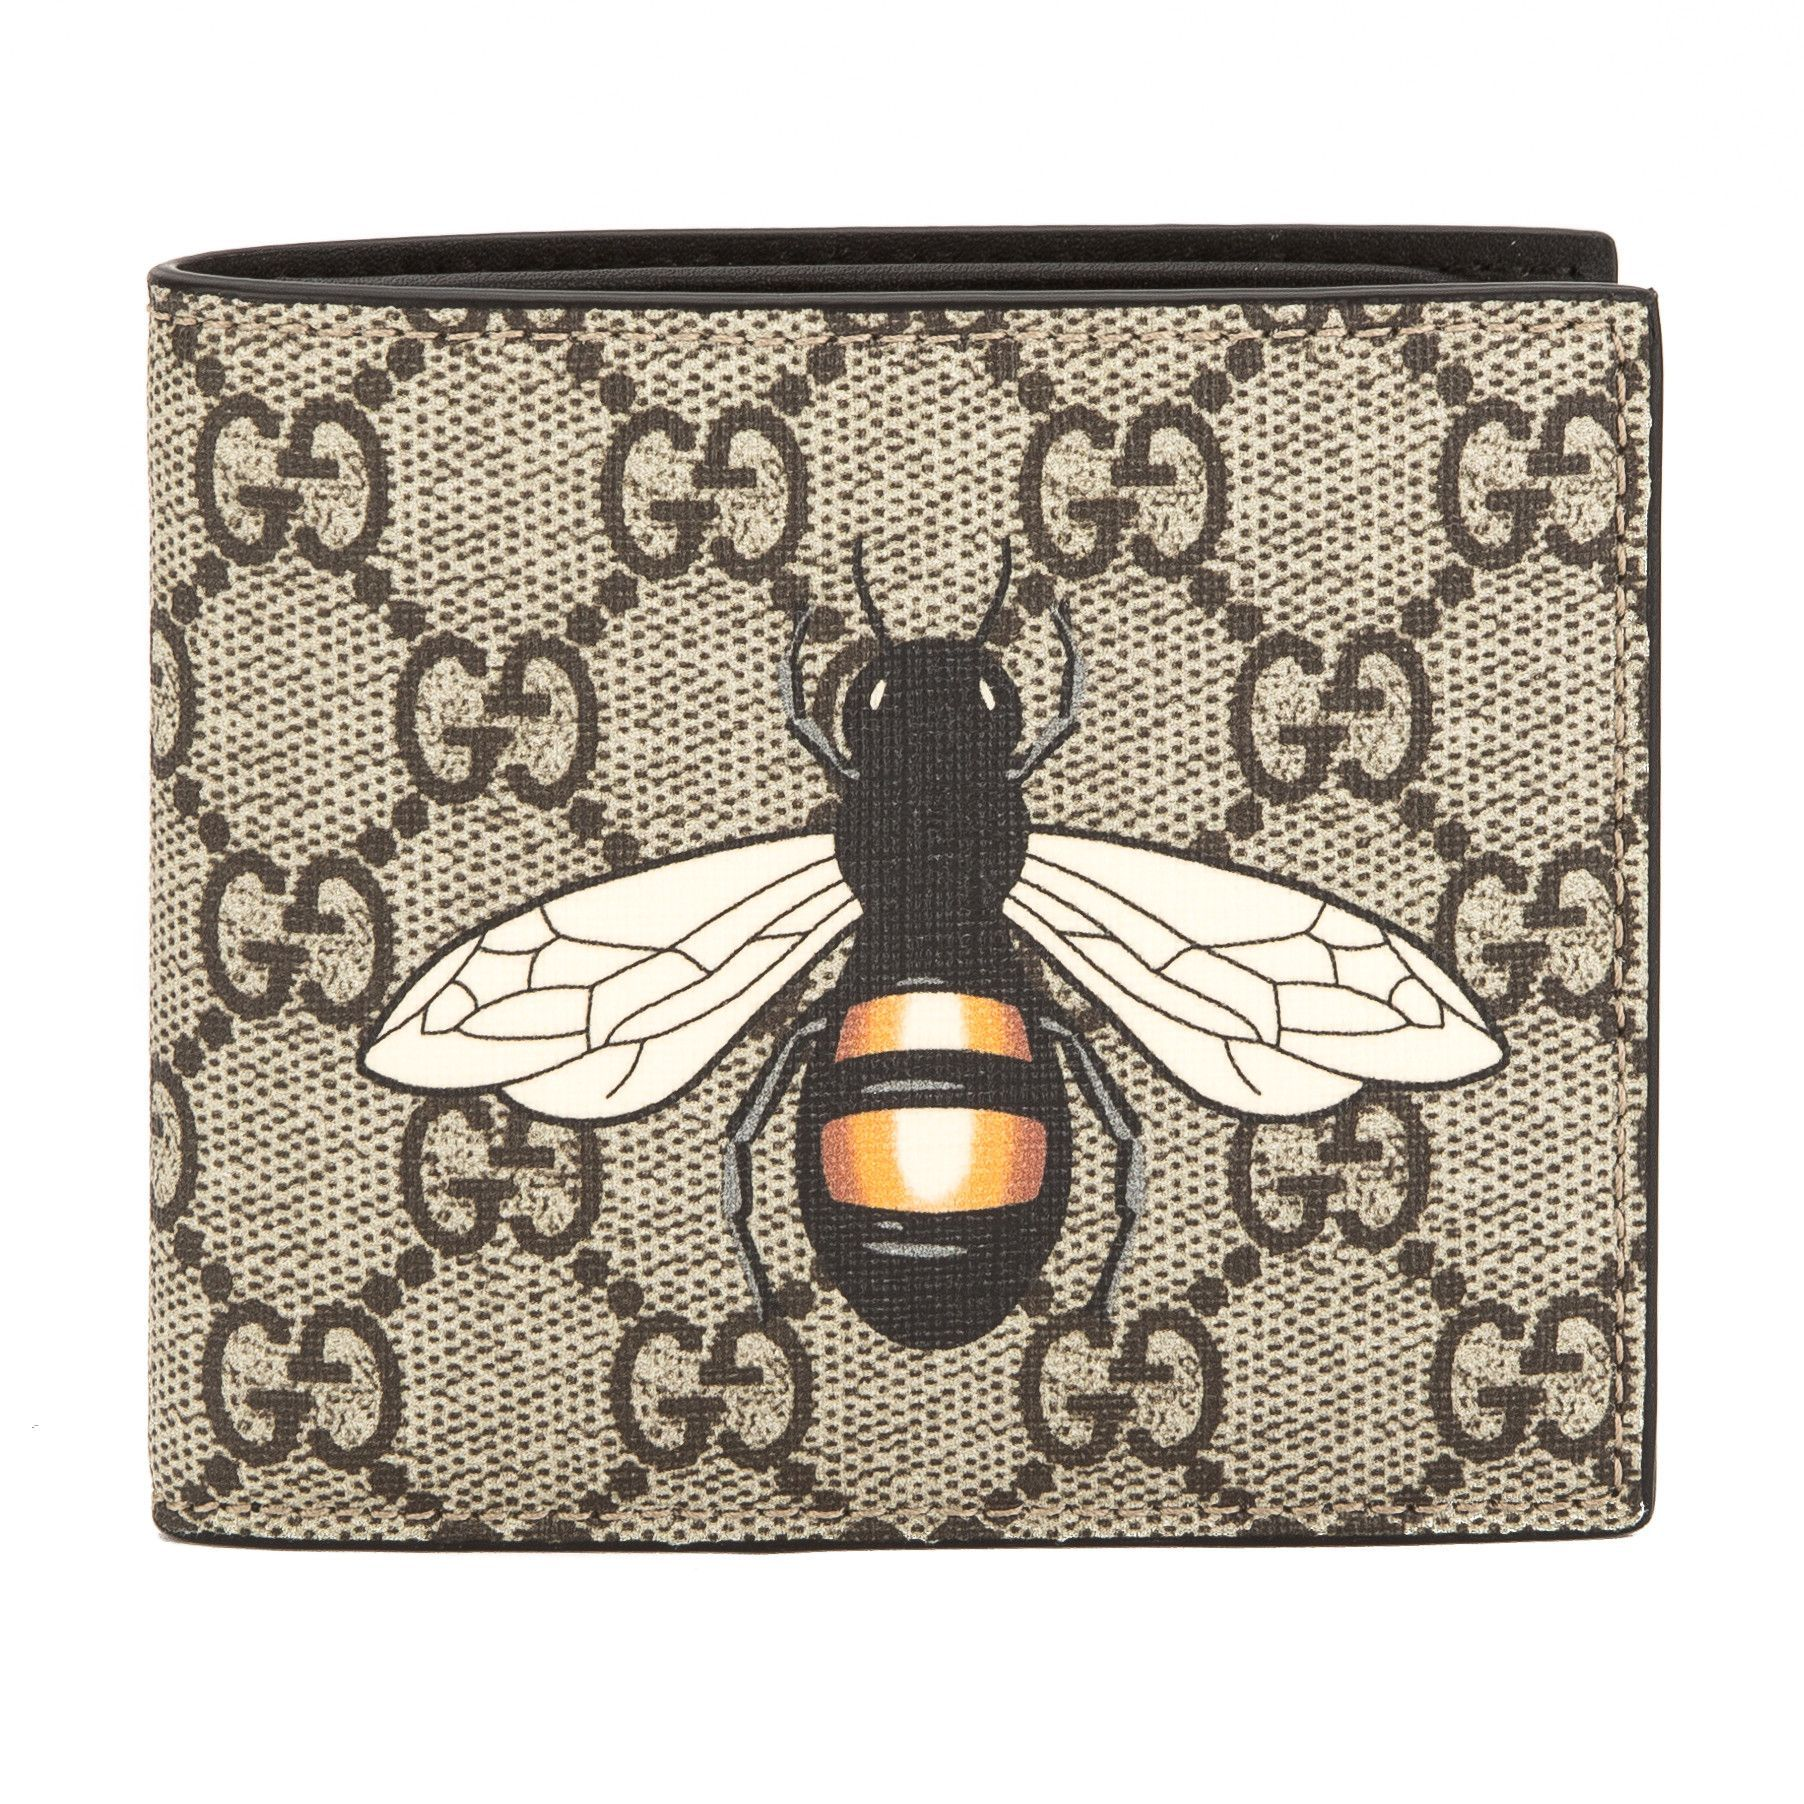 1cbb328f36c8 Gucci GG Supreme Canvas Bee Print Wallet (New with Tags) | My ...